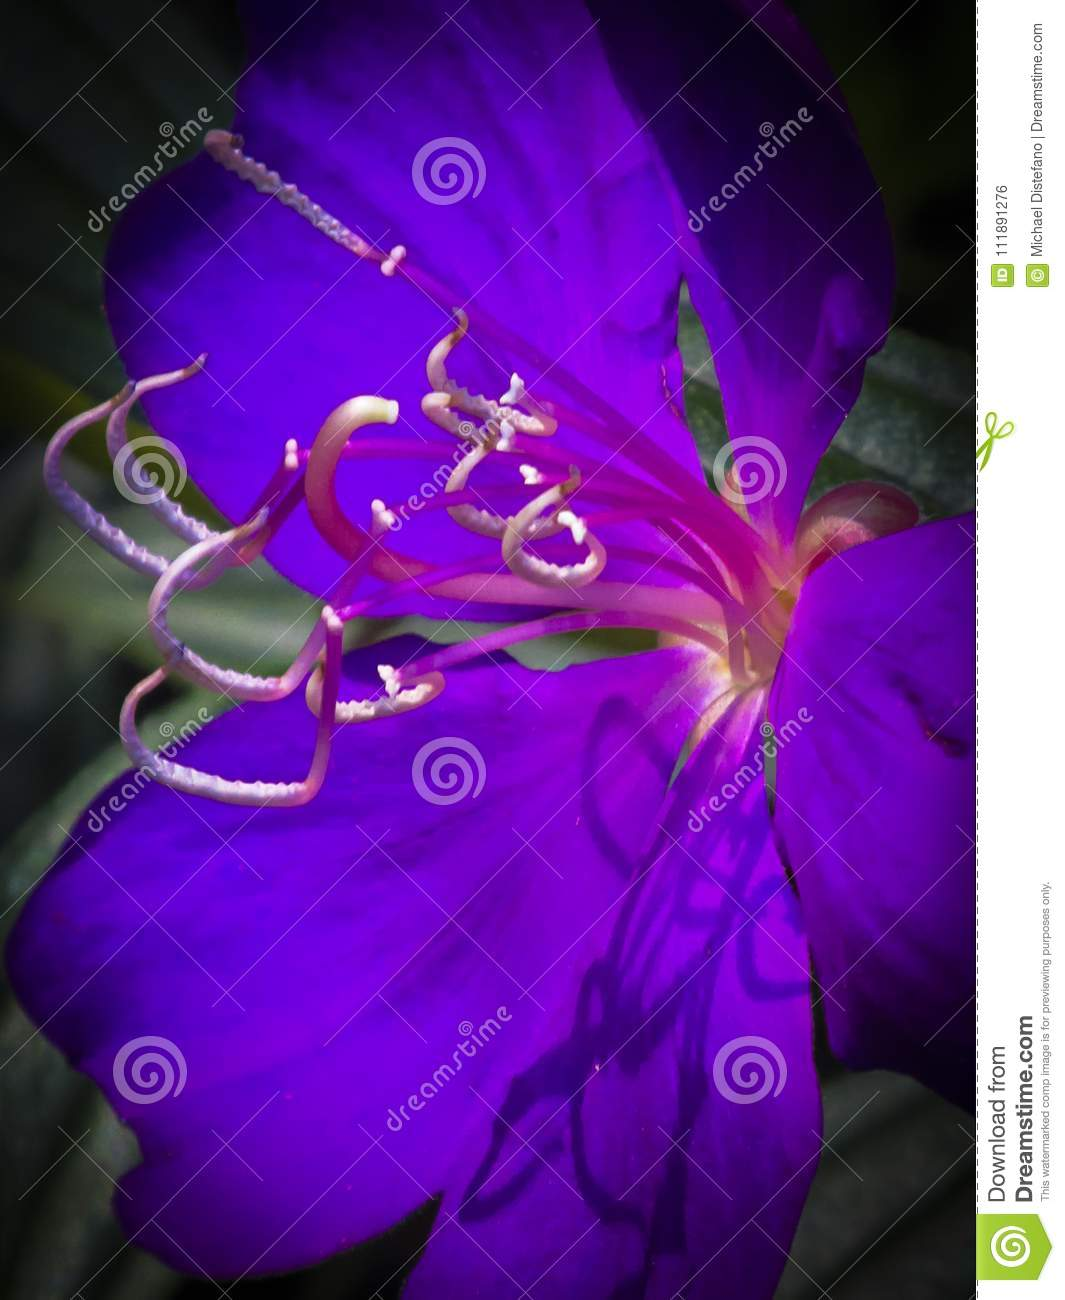 Purple Violet Flower with Stamens and Shadows